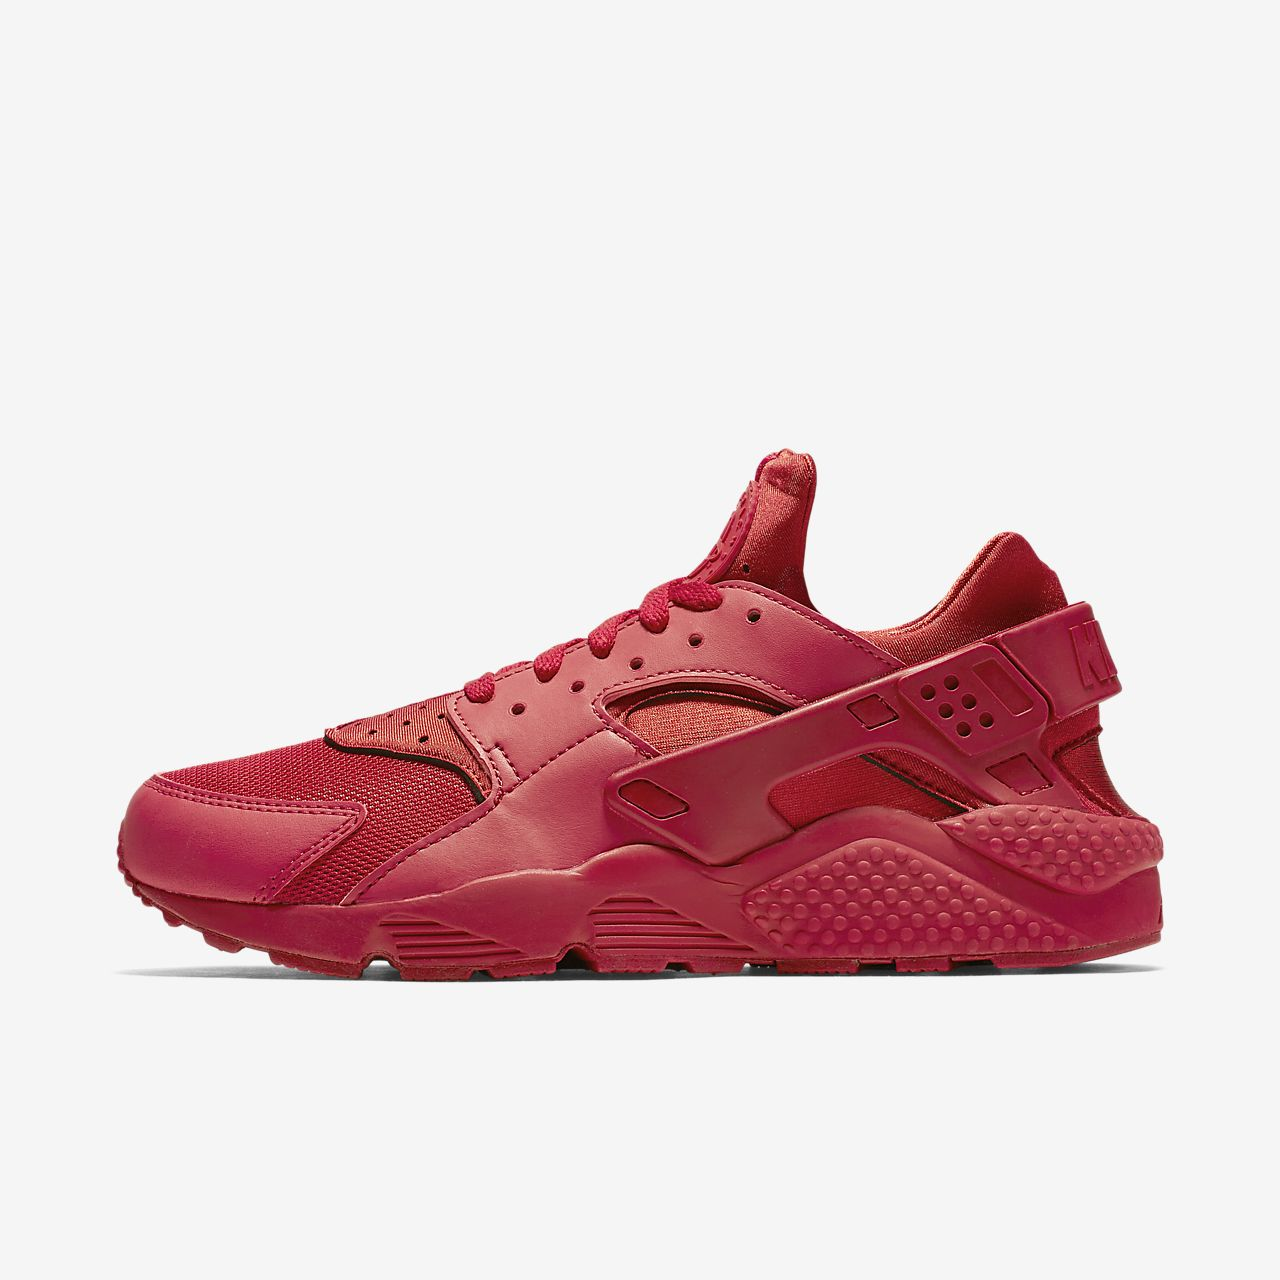 new product 9bbc4 0e3eb ... Nike Air Huarache Men s Shoe